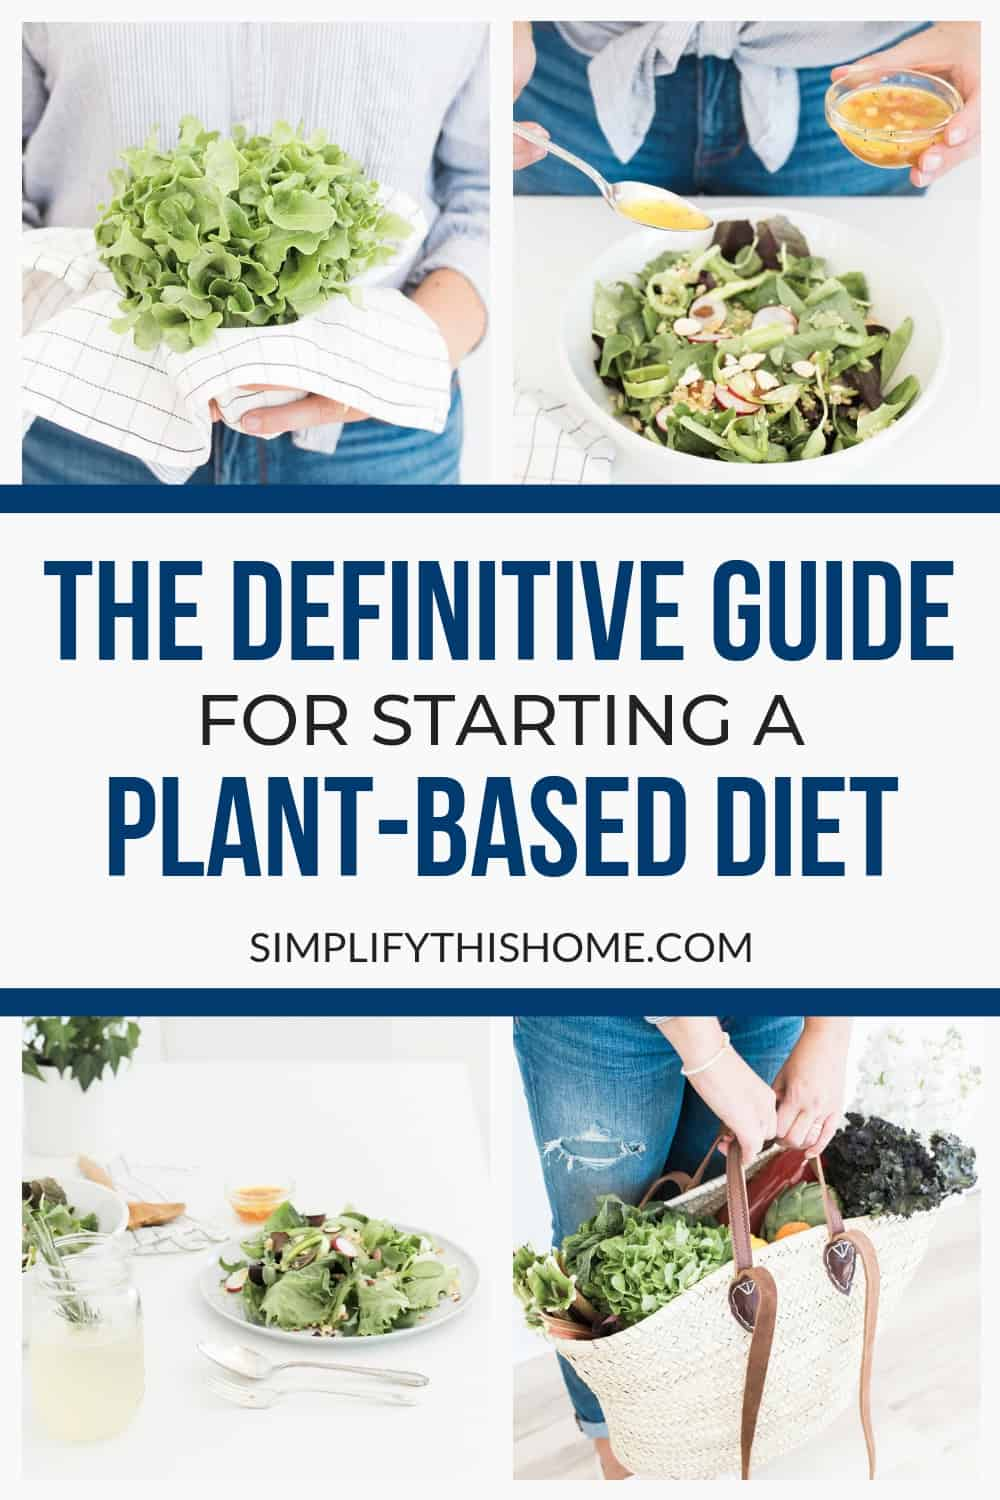 The definitive guide for starting a plant-based diet